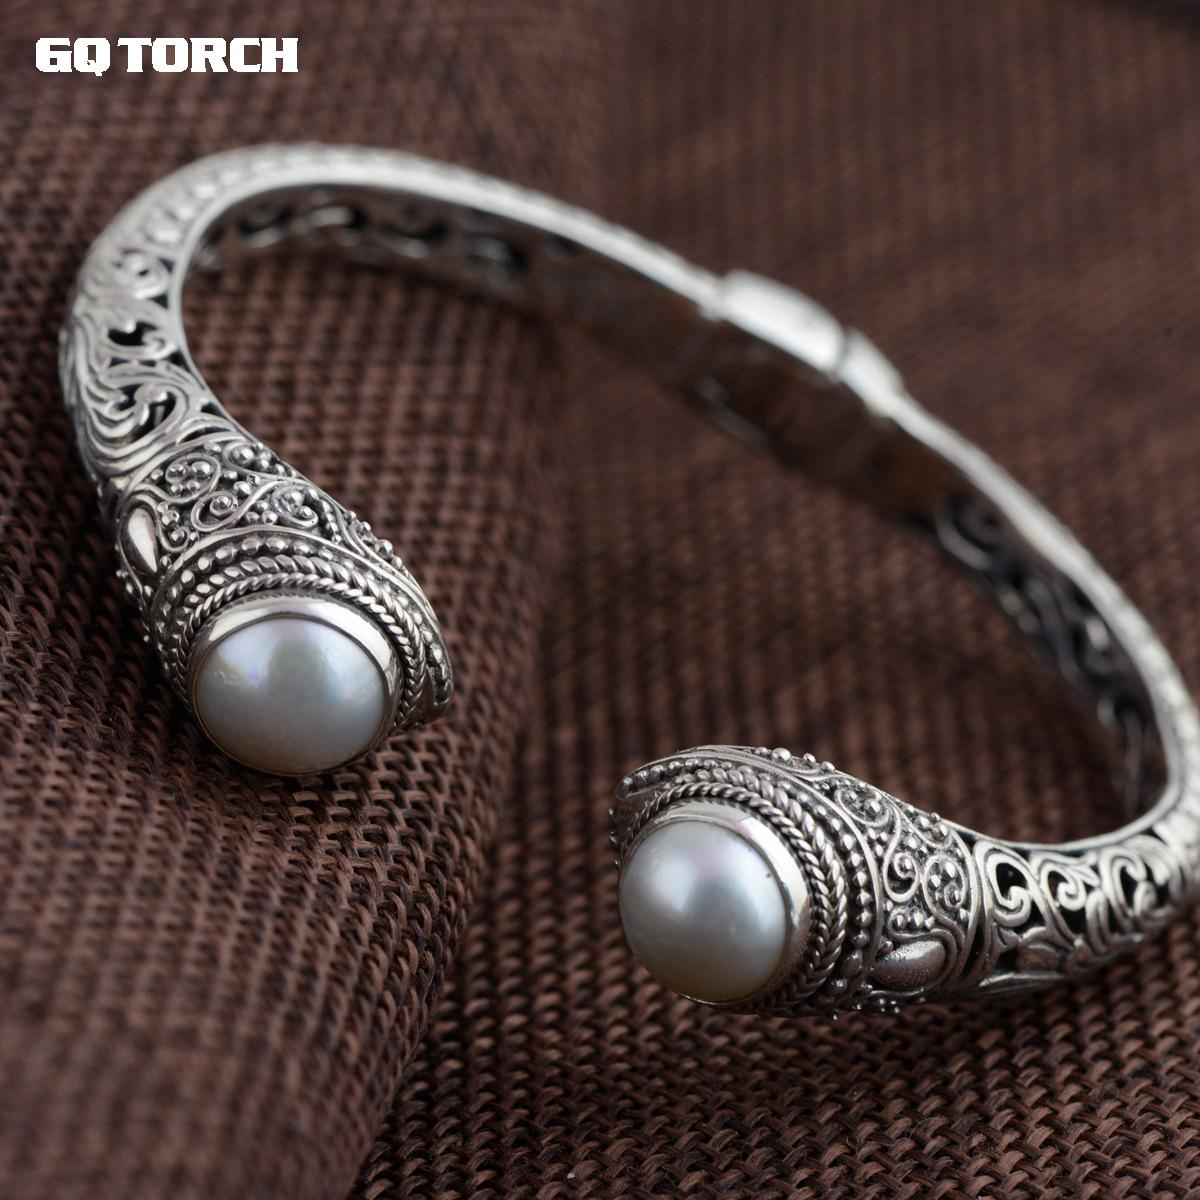 все цены на GQTORCH Bracelets & Bangles Authentic 925 Sterling Silver Cuff Bracelets Natural Pearl Vintage Hollow Flower Carving Armbandjes